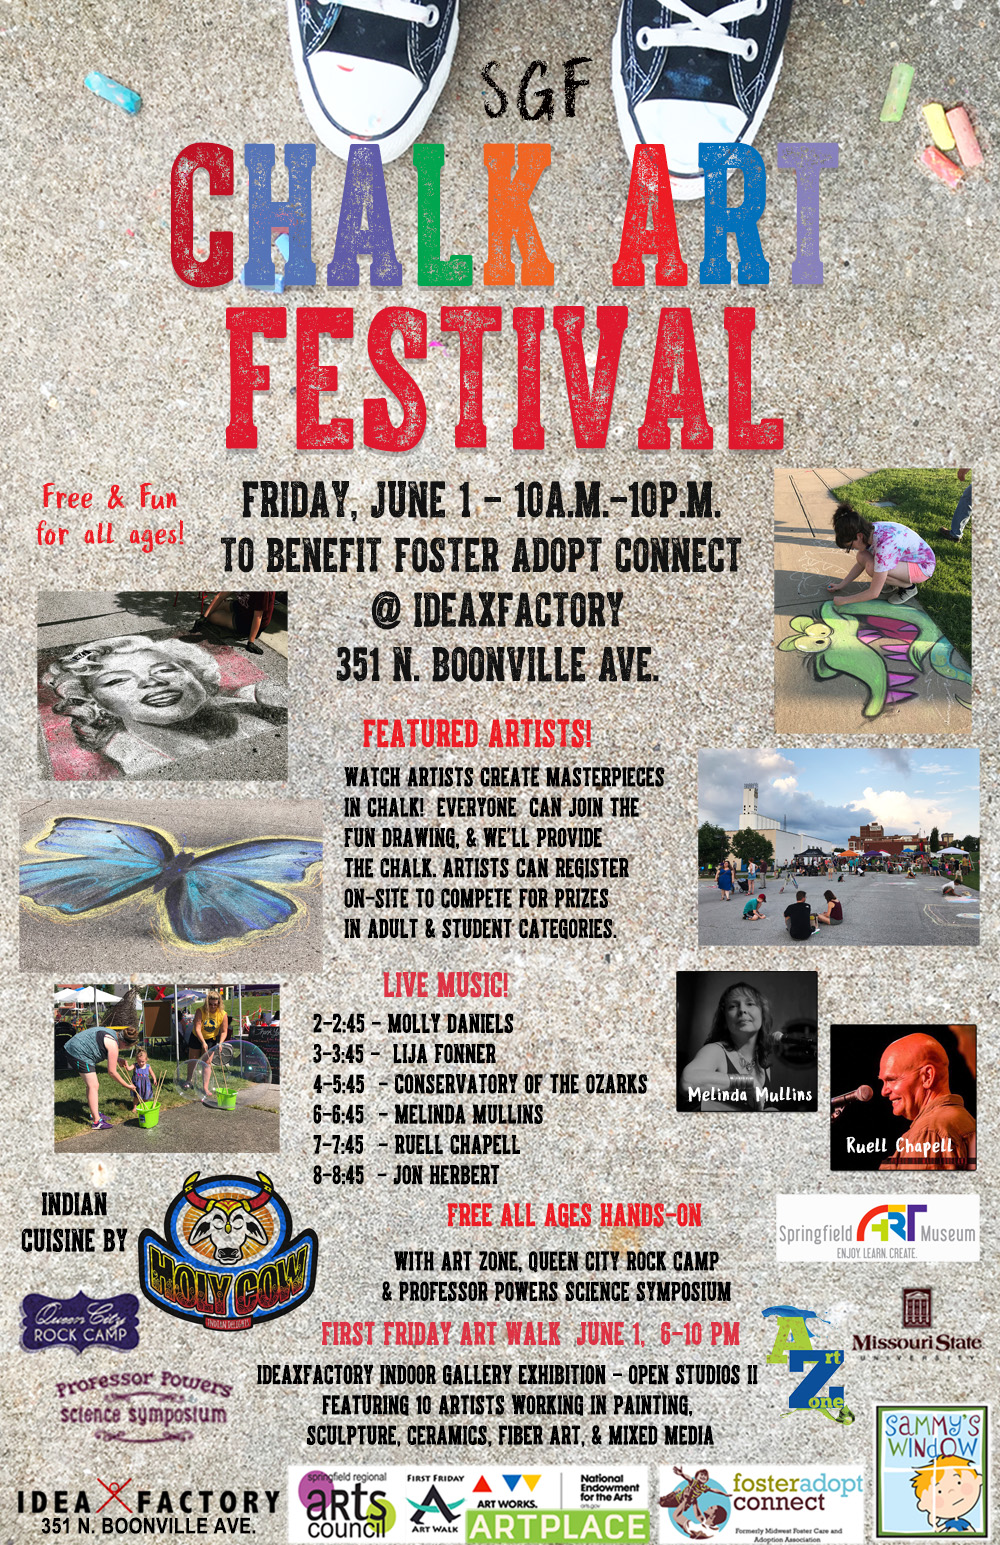 SGF Chalk Art Festival on Friday, June 1